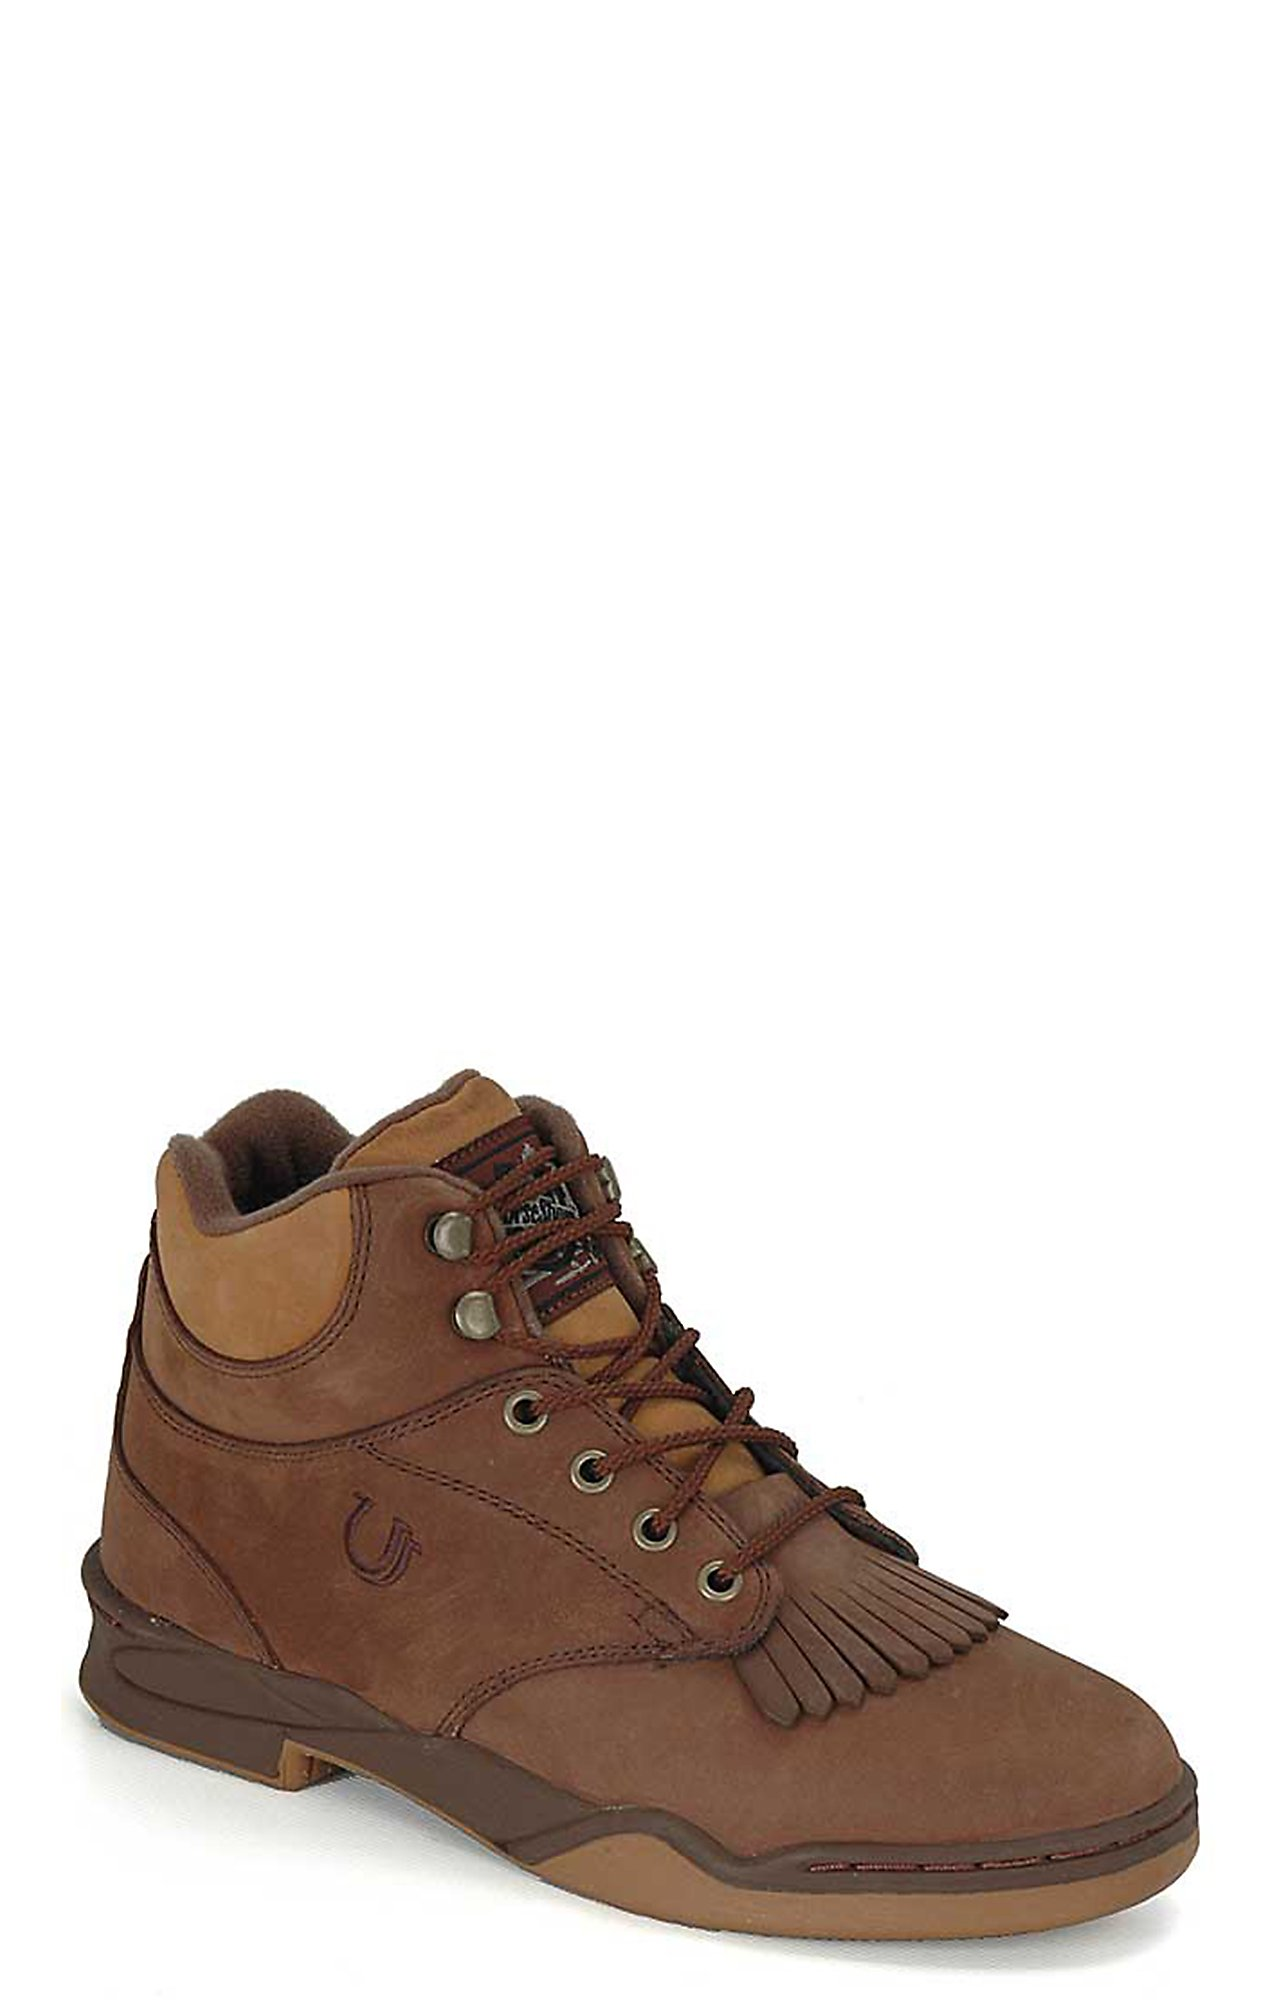 Roper Youth Style Moc Toe Horseshoe Mens Factory Price